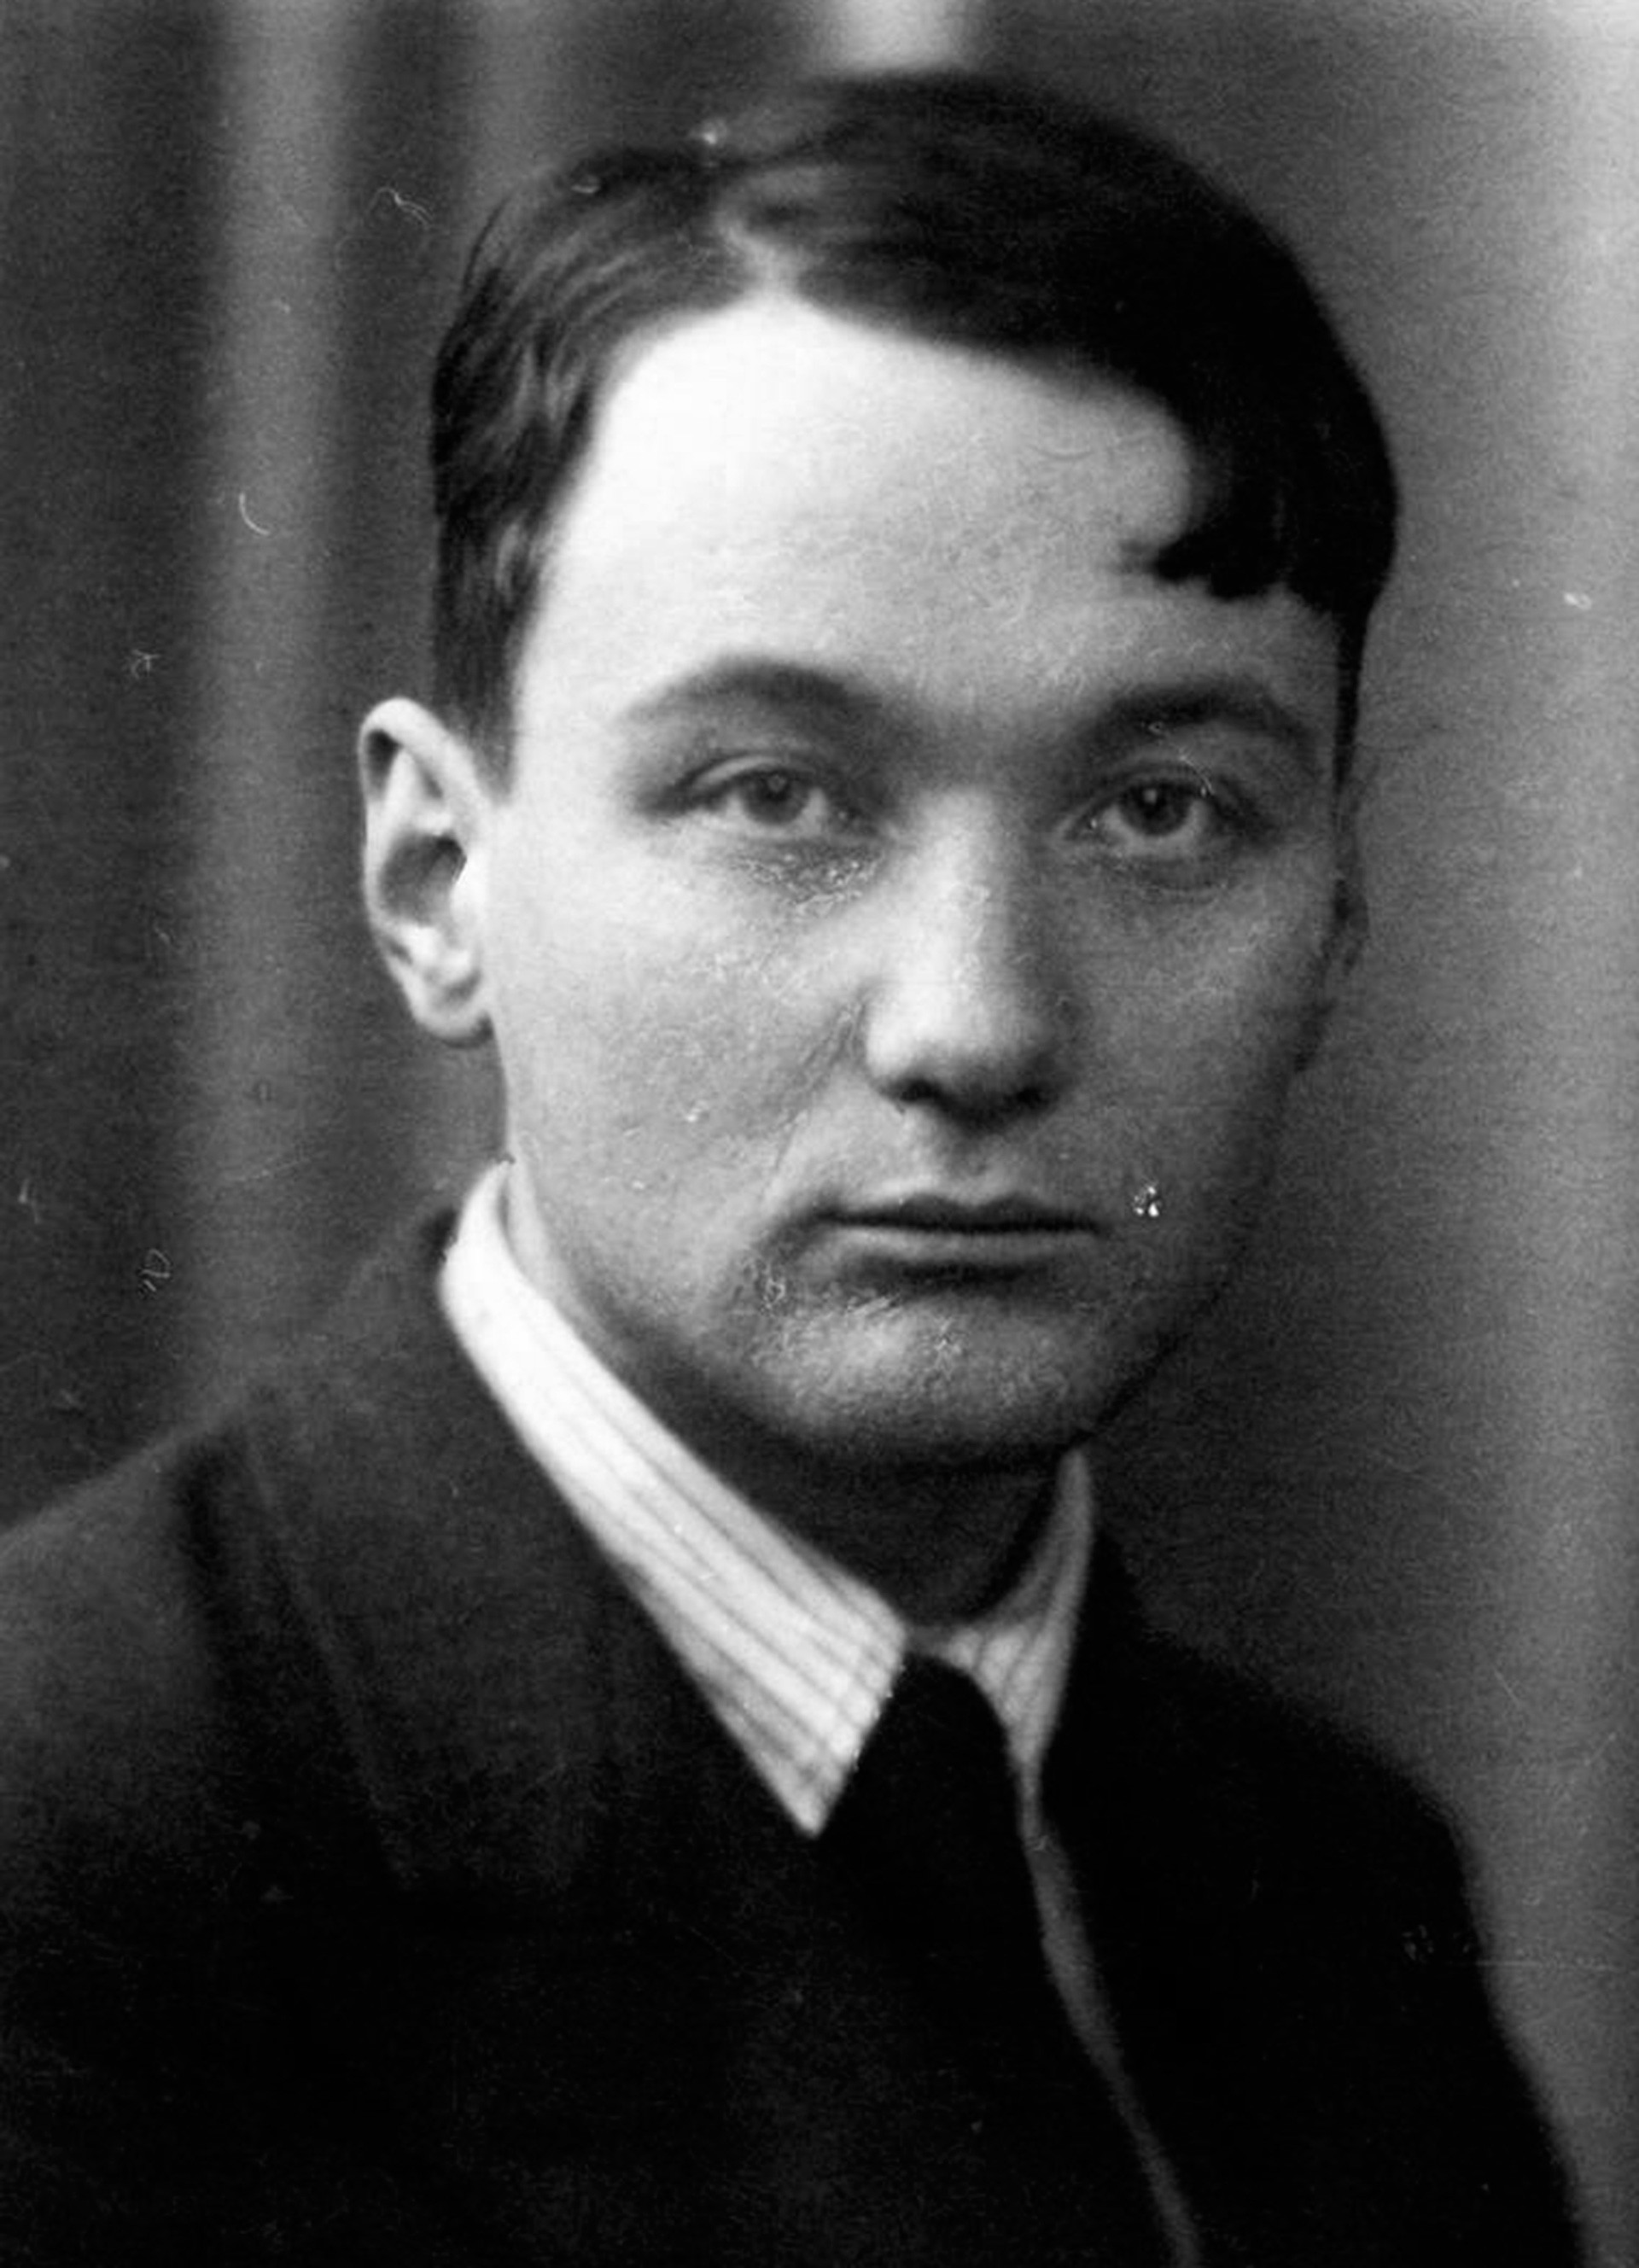 Young Lev Gumilev in 1934.